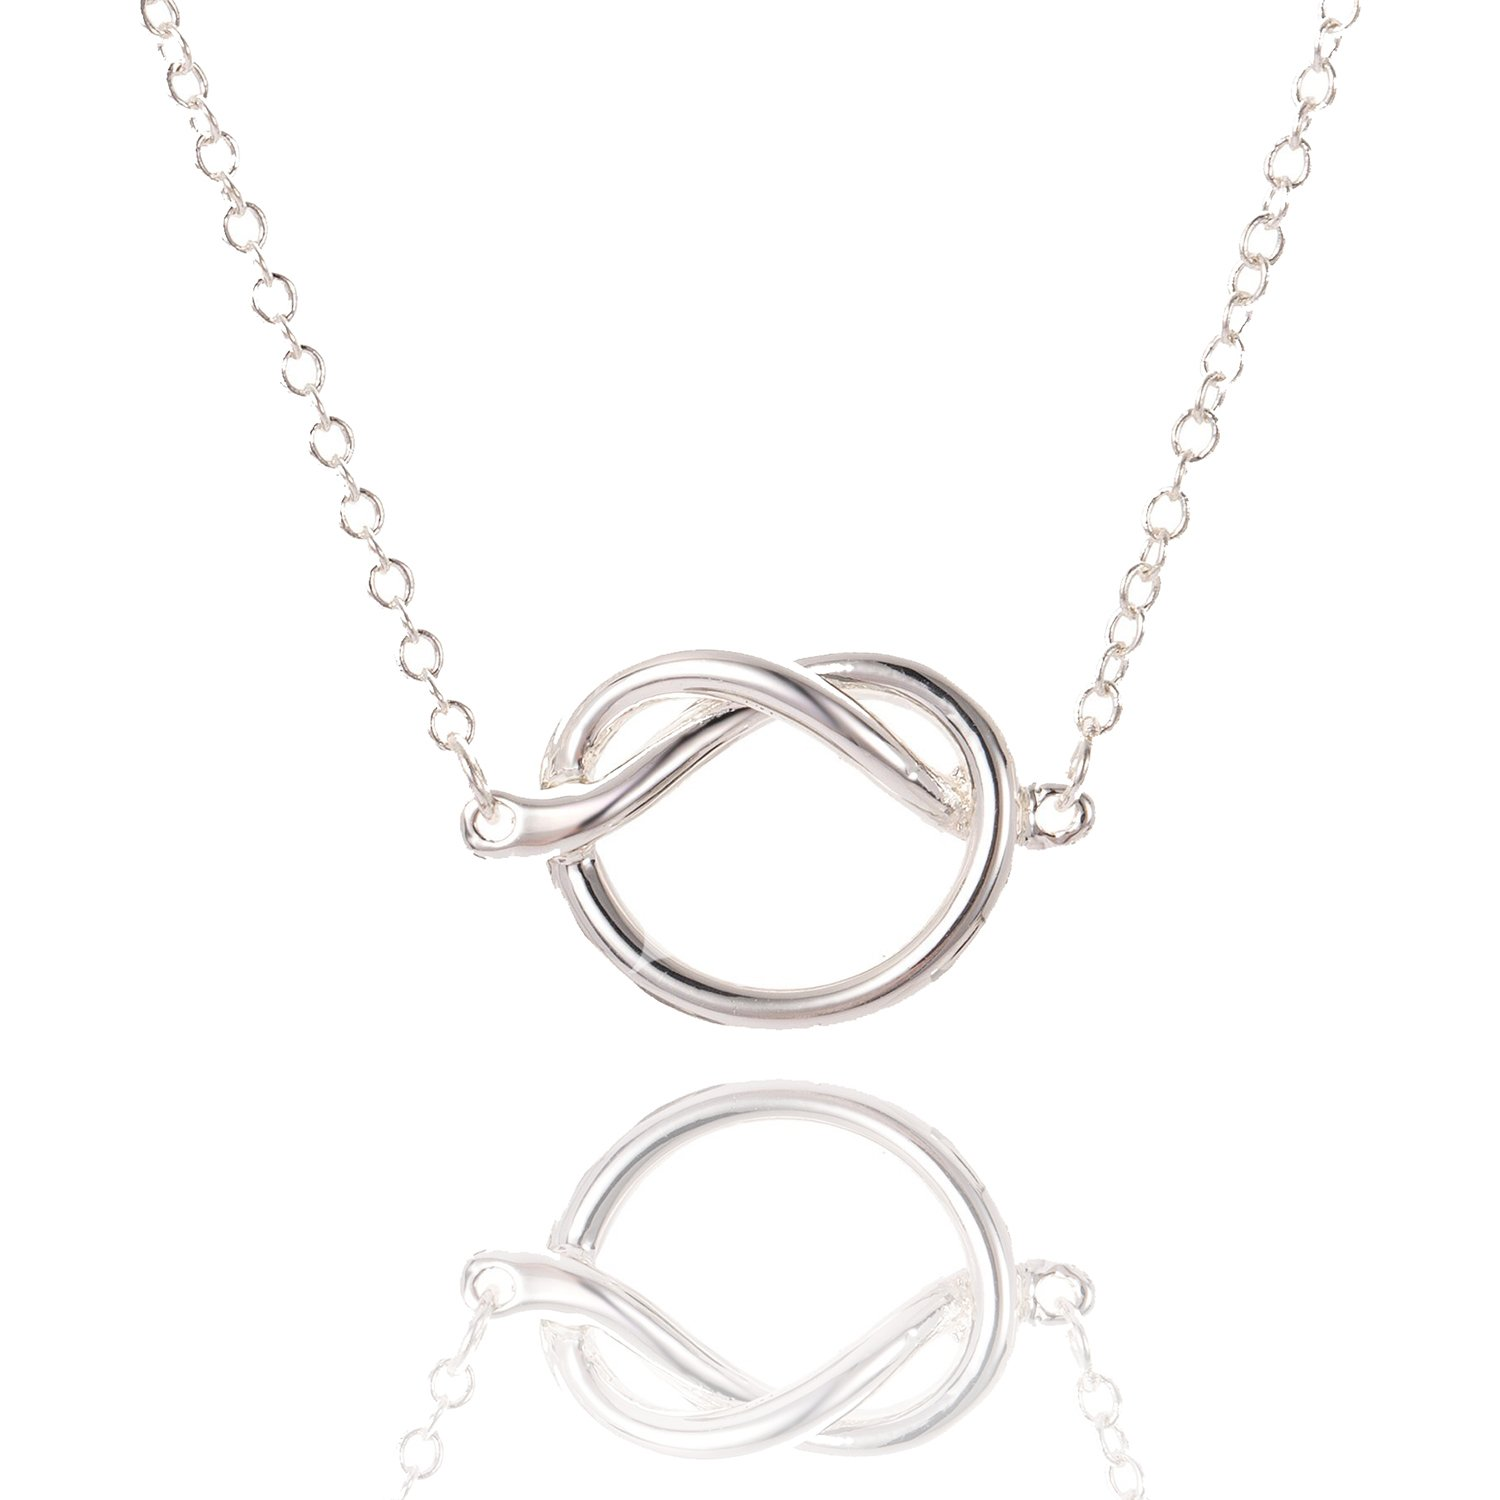 ENSIANTH Love Knot Necklace Tie The Knot Charm Pendant Wedding Gift for Bridesmaid (Silver Knot Necklace)